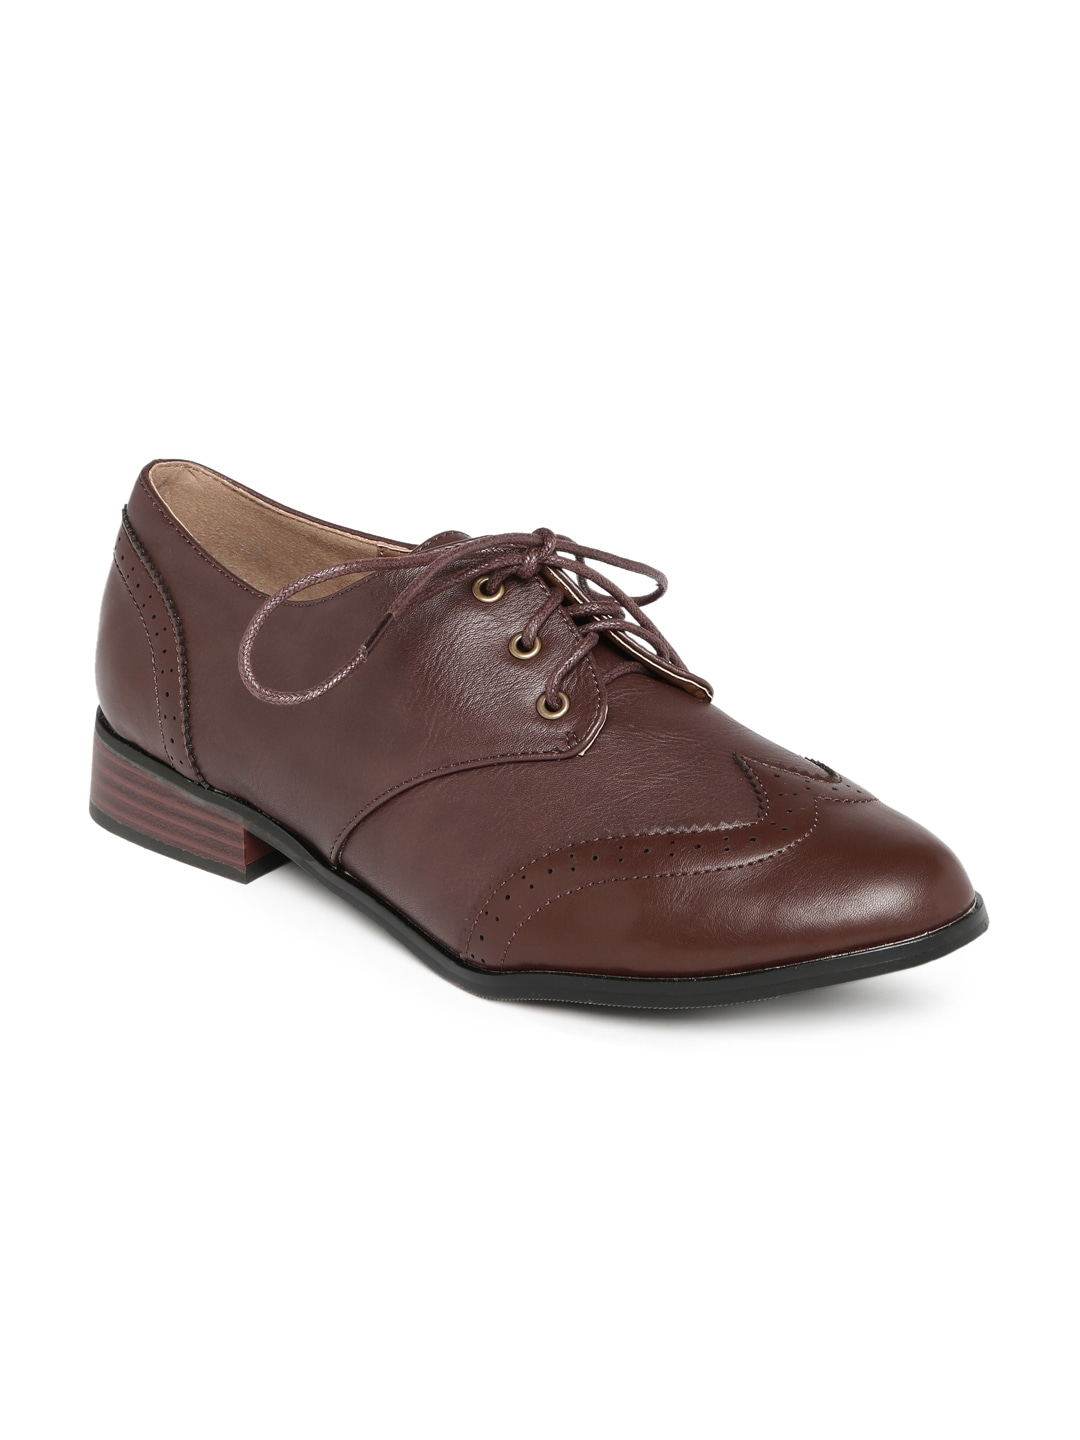 Allen Solly Women Brown Solid Formal Shoes image